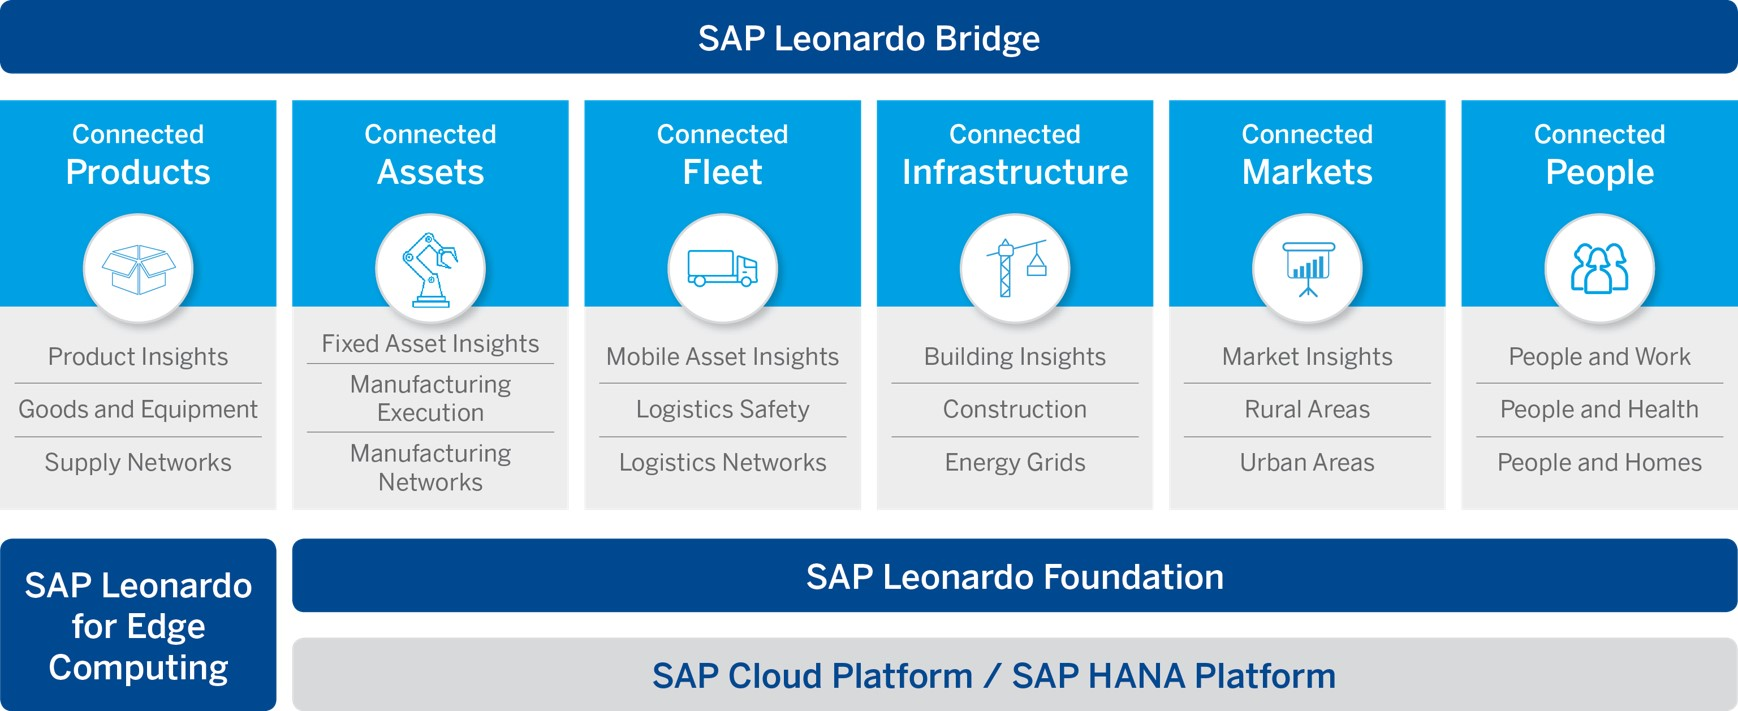 Sap Leonardo Empowering Live Business By Connecting